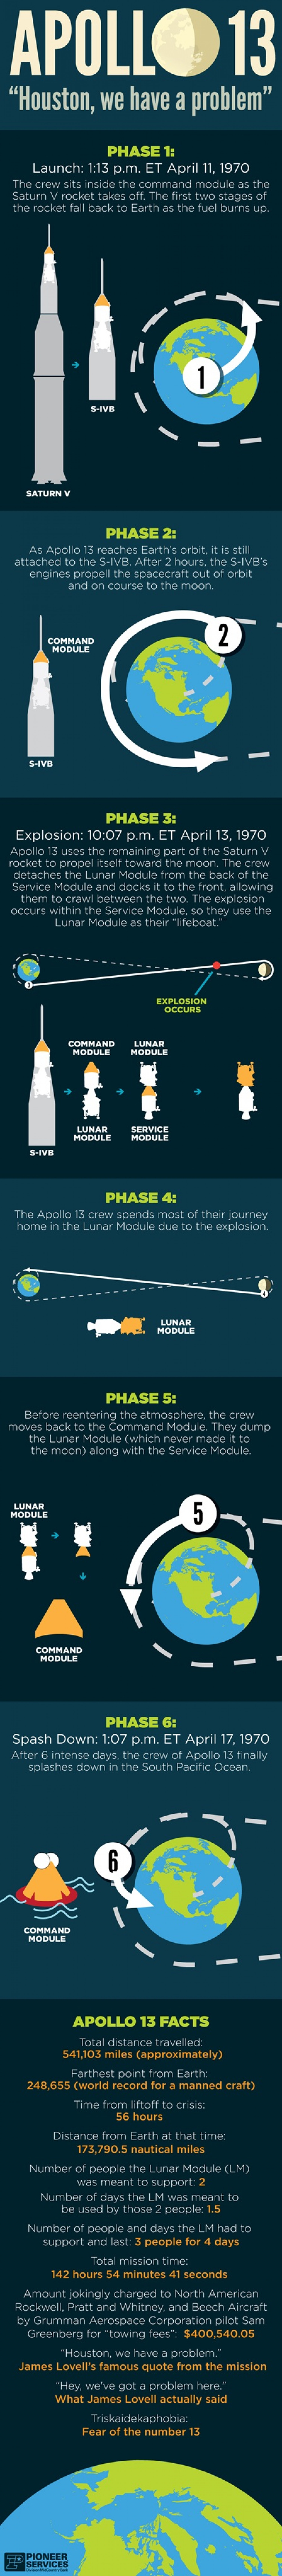 "Apollo 13 ""Houston, We Have A Problem"" Infographic"